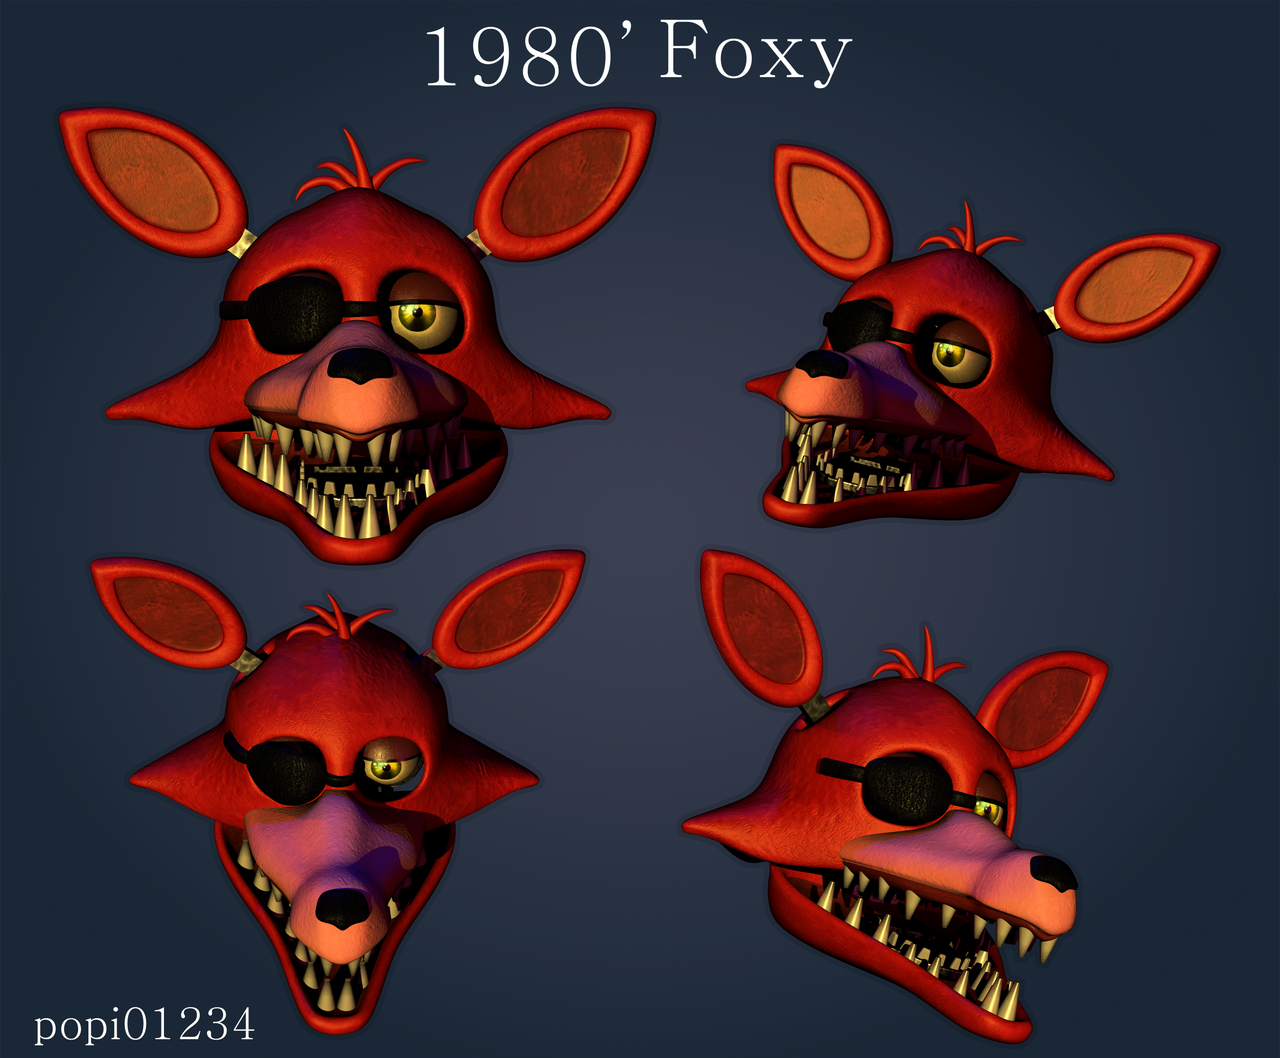 Unwithered Foxy Head By Popi01234 On DeviantArt